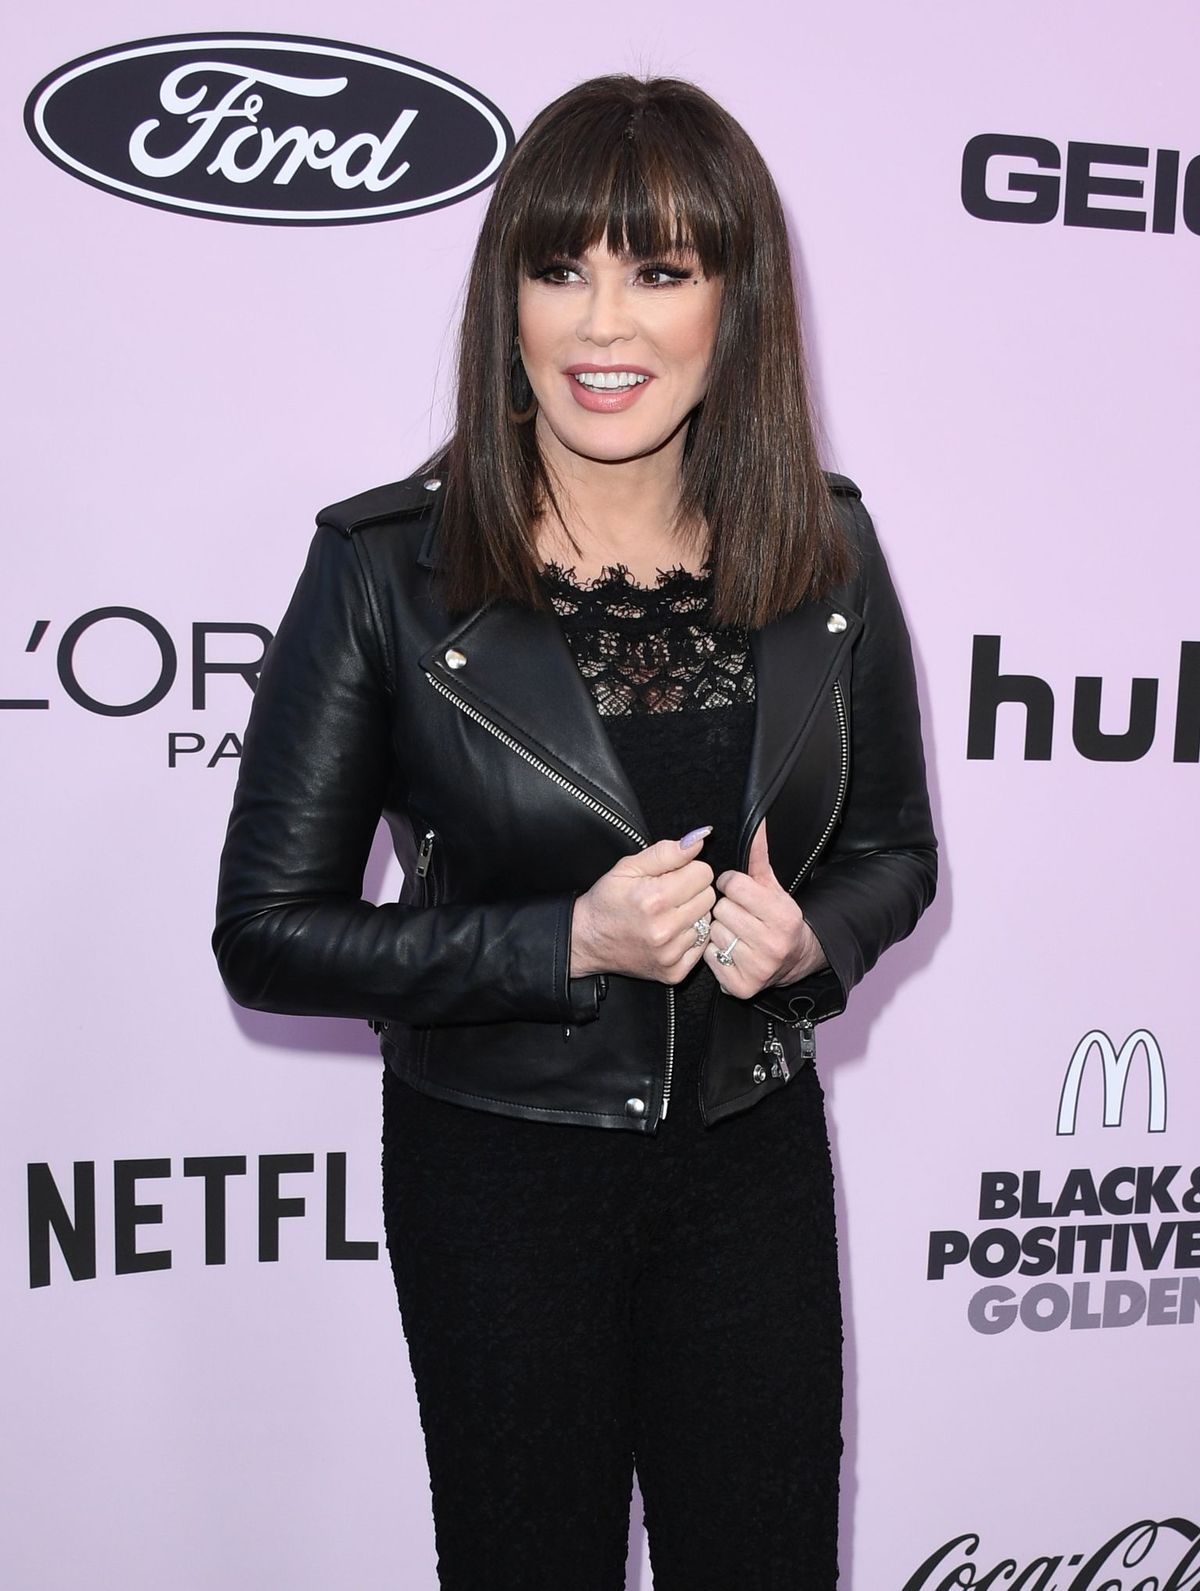 Marie Osmond at the 13th Annual Essence Black Women In Hollywood Awards Luncheon on February 06, 2020, in Beverly Hills, California | Photo: Jon Kopaloff/FilmMagic/Getty Images